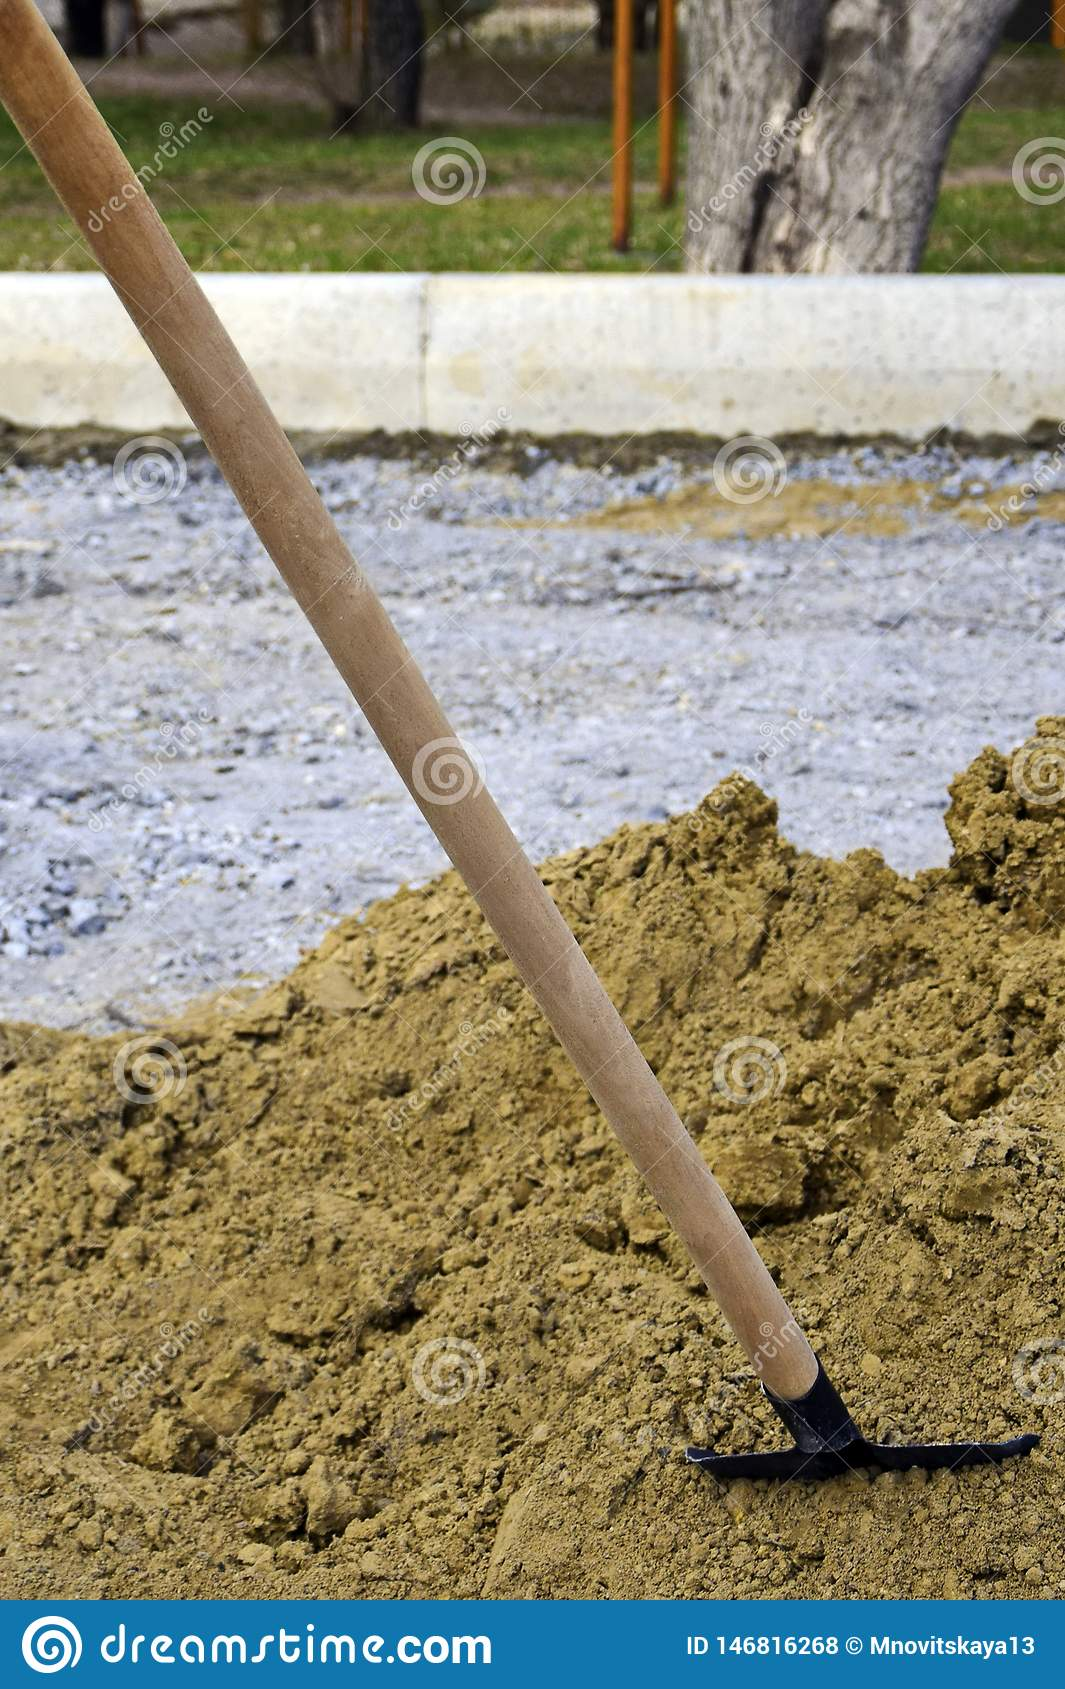 Old hand shovel stuck into a pile of sand at a construction site